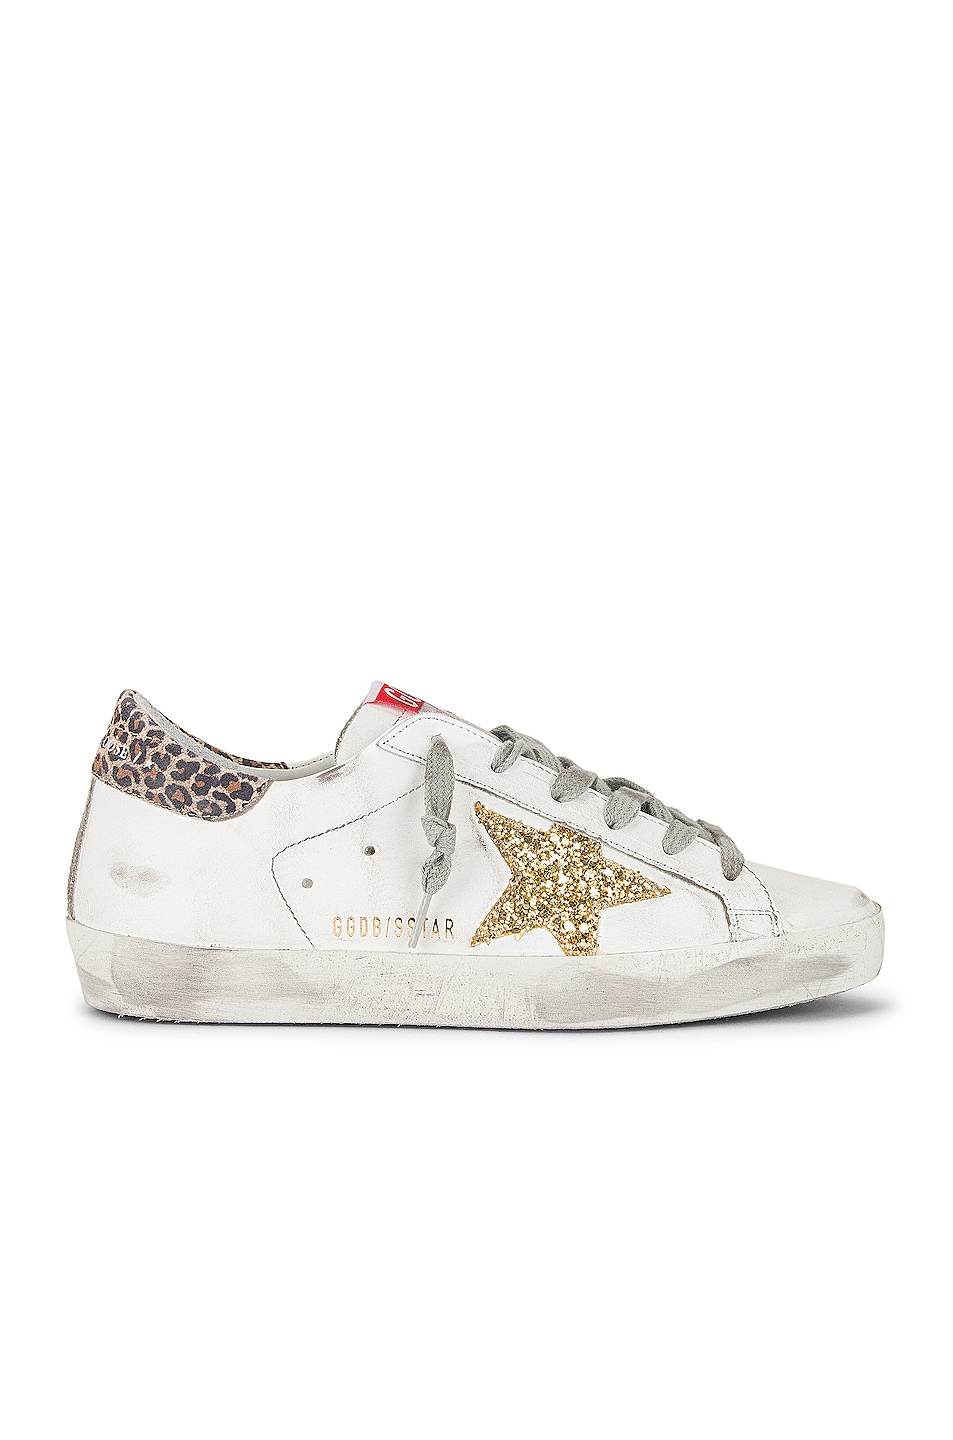 Image 1 of Golden Goose Superstar Sneaker in White, Yellow Gold & Beige Brown Leopard